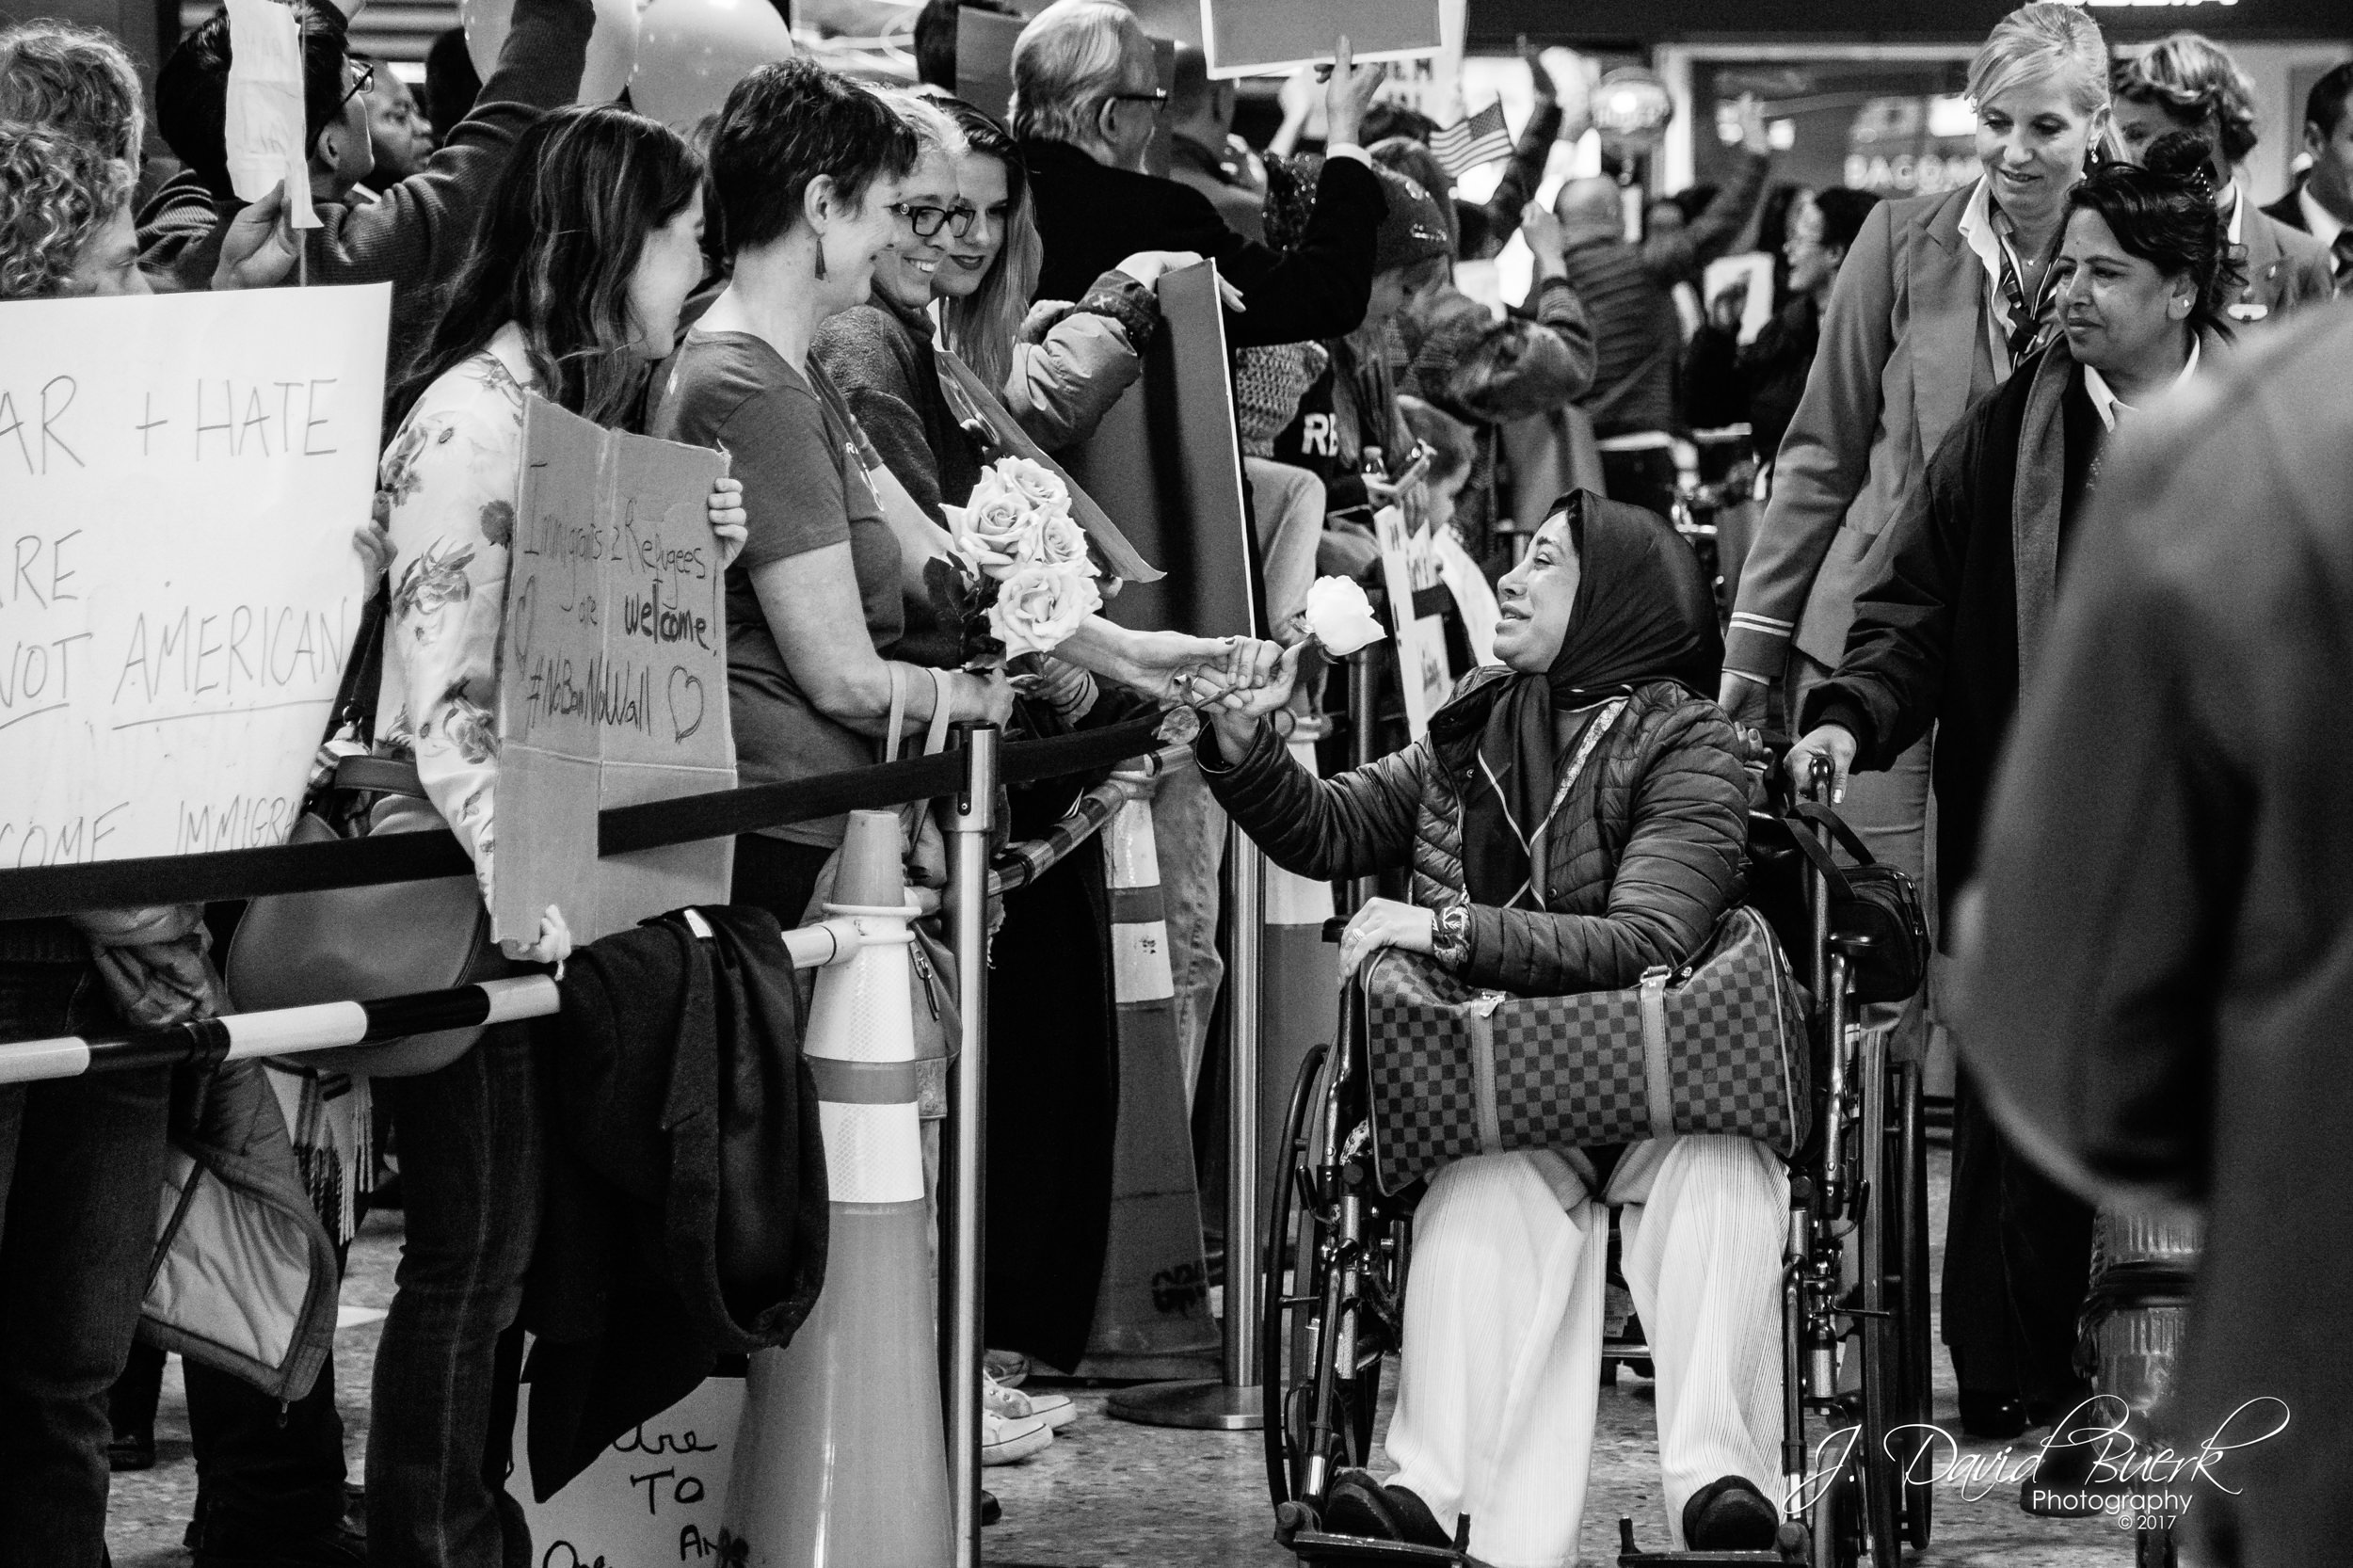 "A protestor gives a white rose to an arriving international passenger.  White roses are traditionally known to represent purity, innocence, sympathy, and spirituality.  Following President Trump's executive order implementing a travel ban on seven countries, protests initiated at international airports across the United States where individuals affected by the rapidly enacted ban were detained. The Trump administration justified the executive order as part of the ""extreme vetting"" of immigrants promised during his campaign, while those opposed to the ban question the constitutionality, motives, and execution of the ban. Virginia Senator Tim Kaine (D) was on-site denouncing President Trump's travel ban in a press conference."